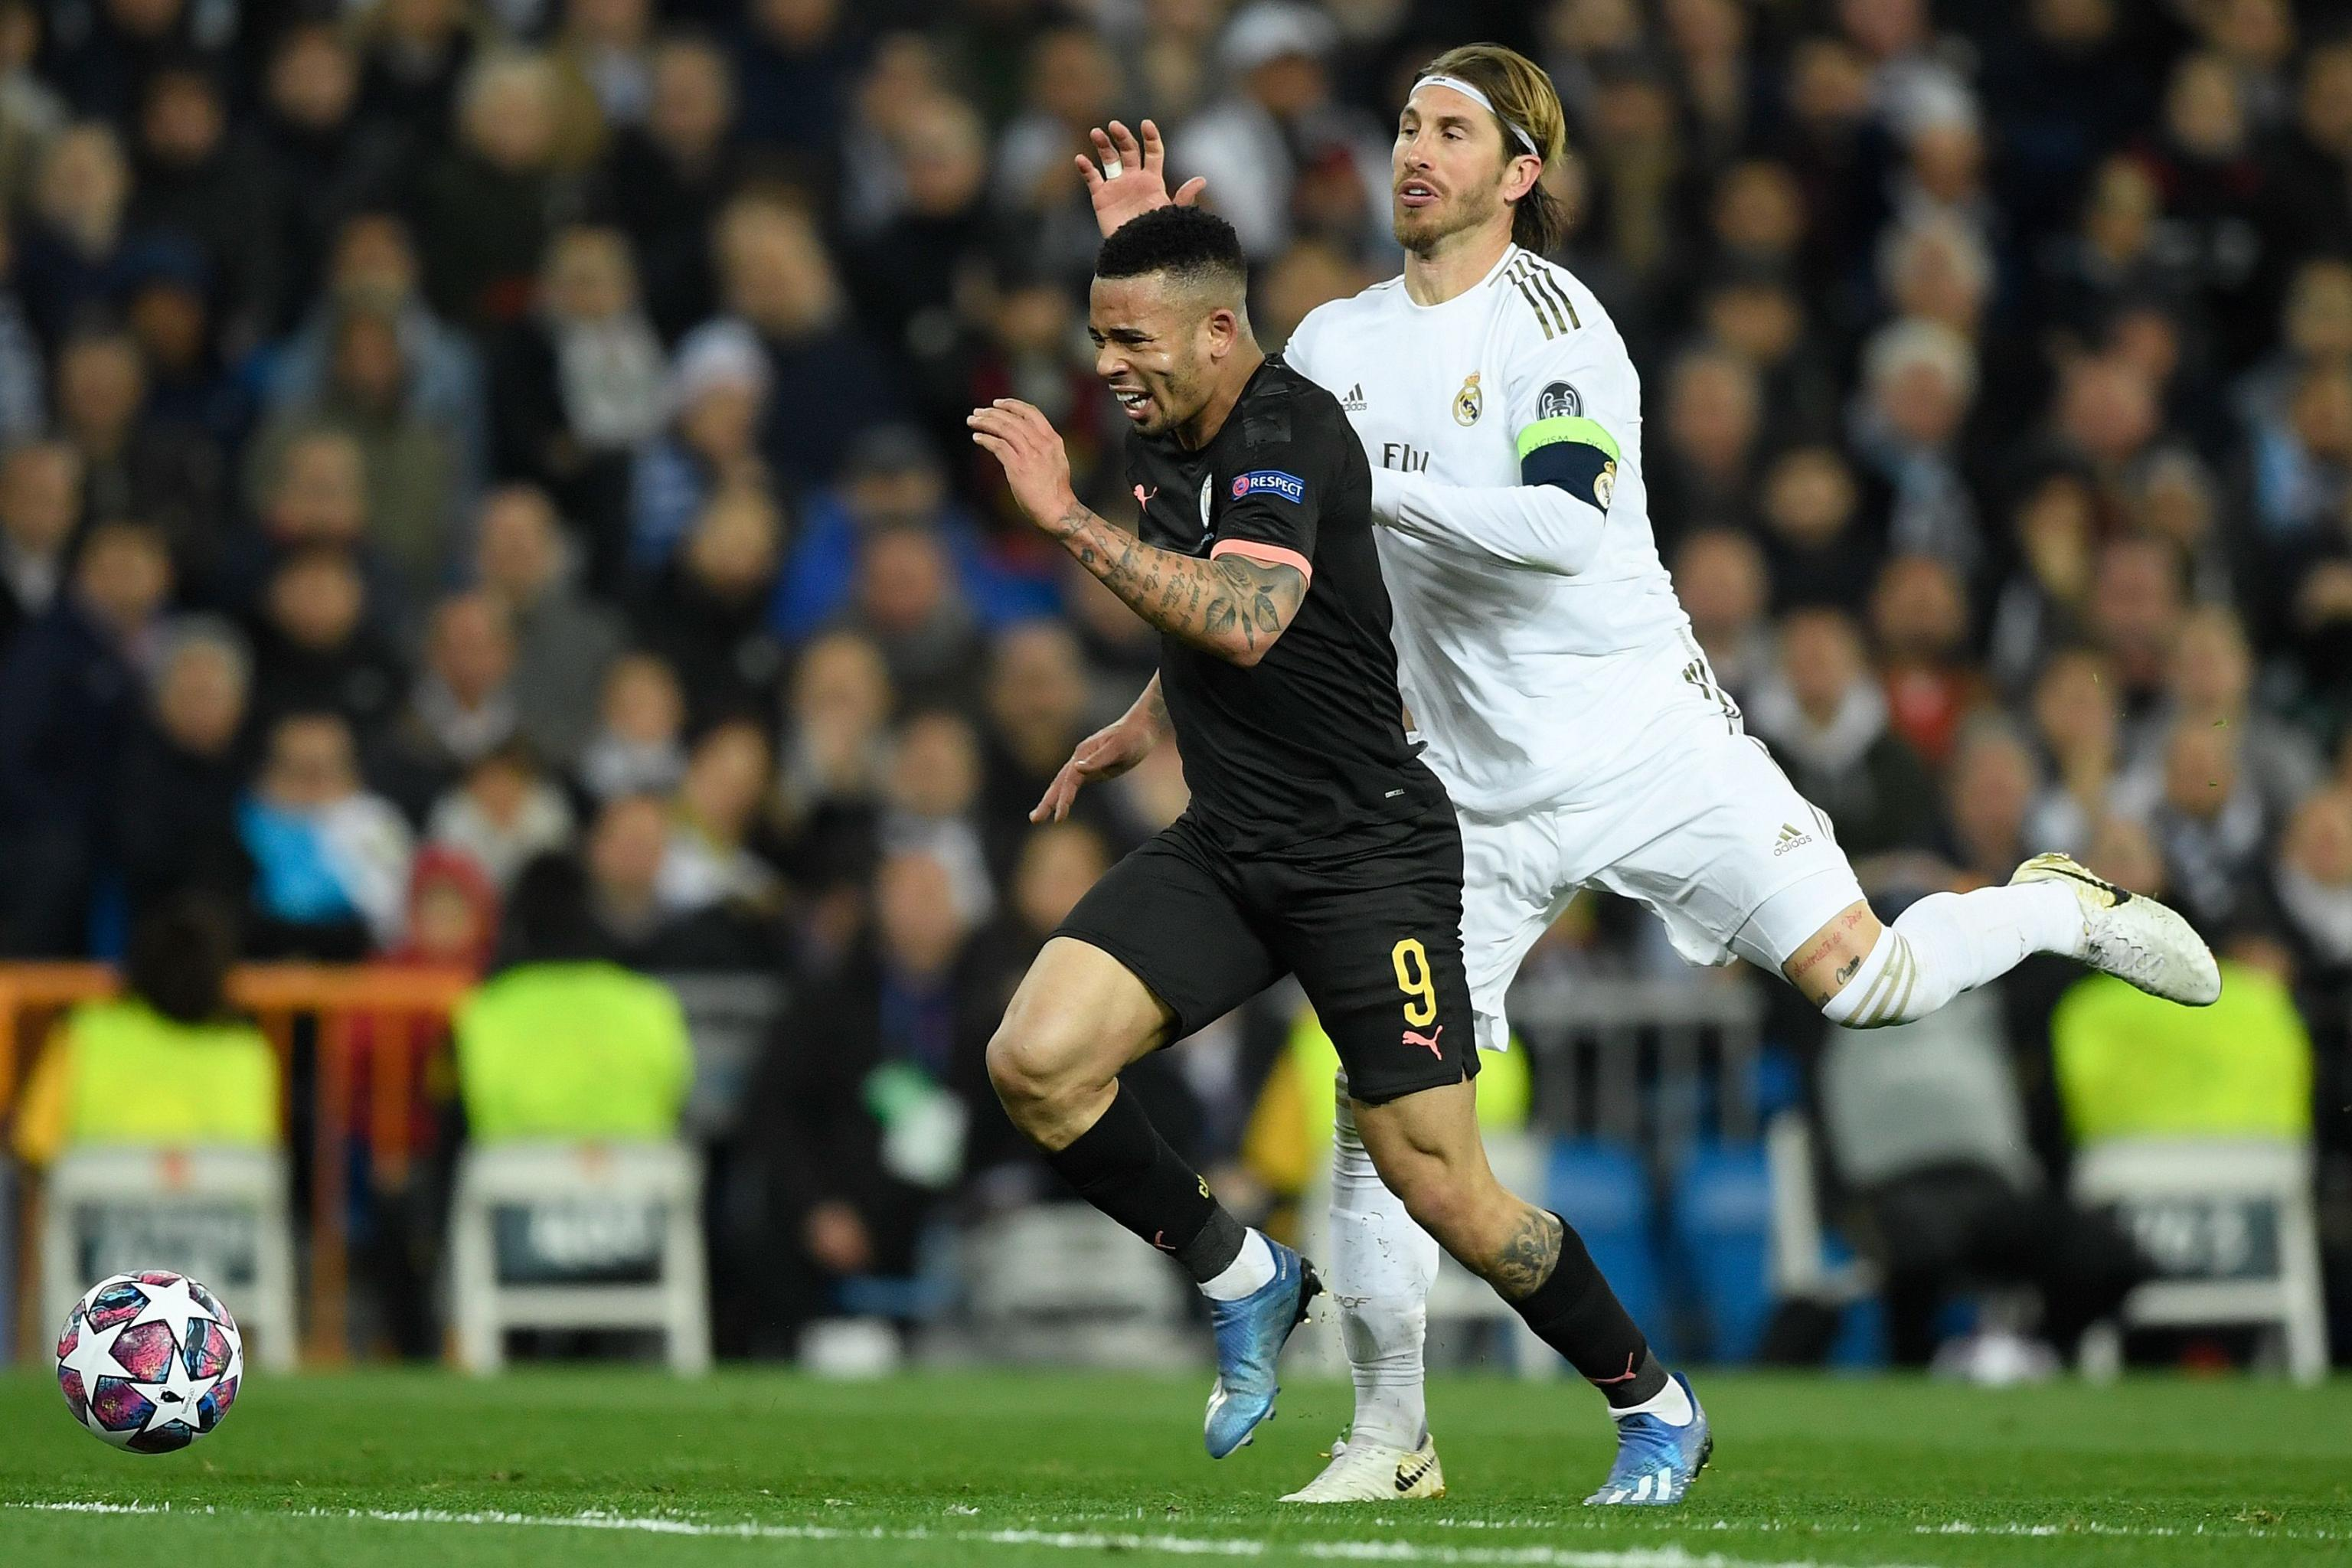 champions league 2020 results top scorers after wednesday s round of 16 games bleacher report latest news videos and highlights champions league 2020 results top